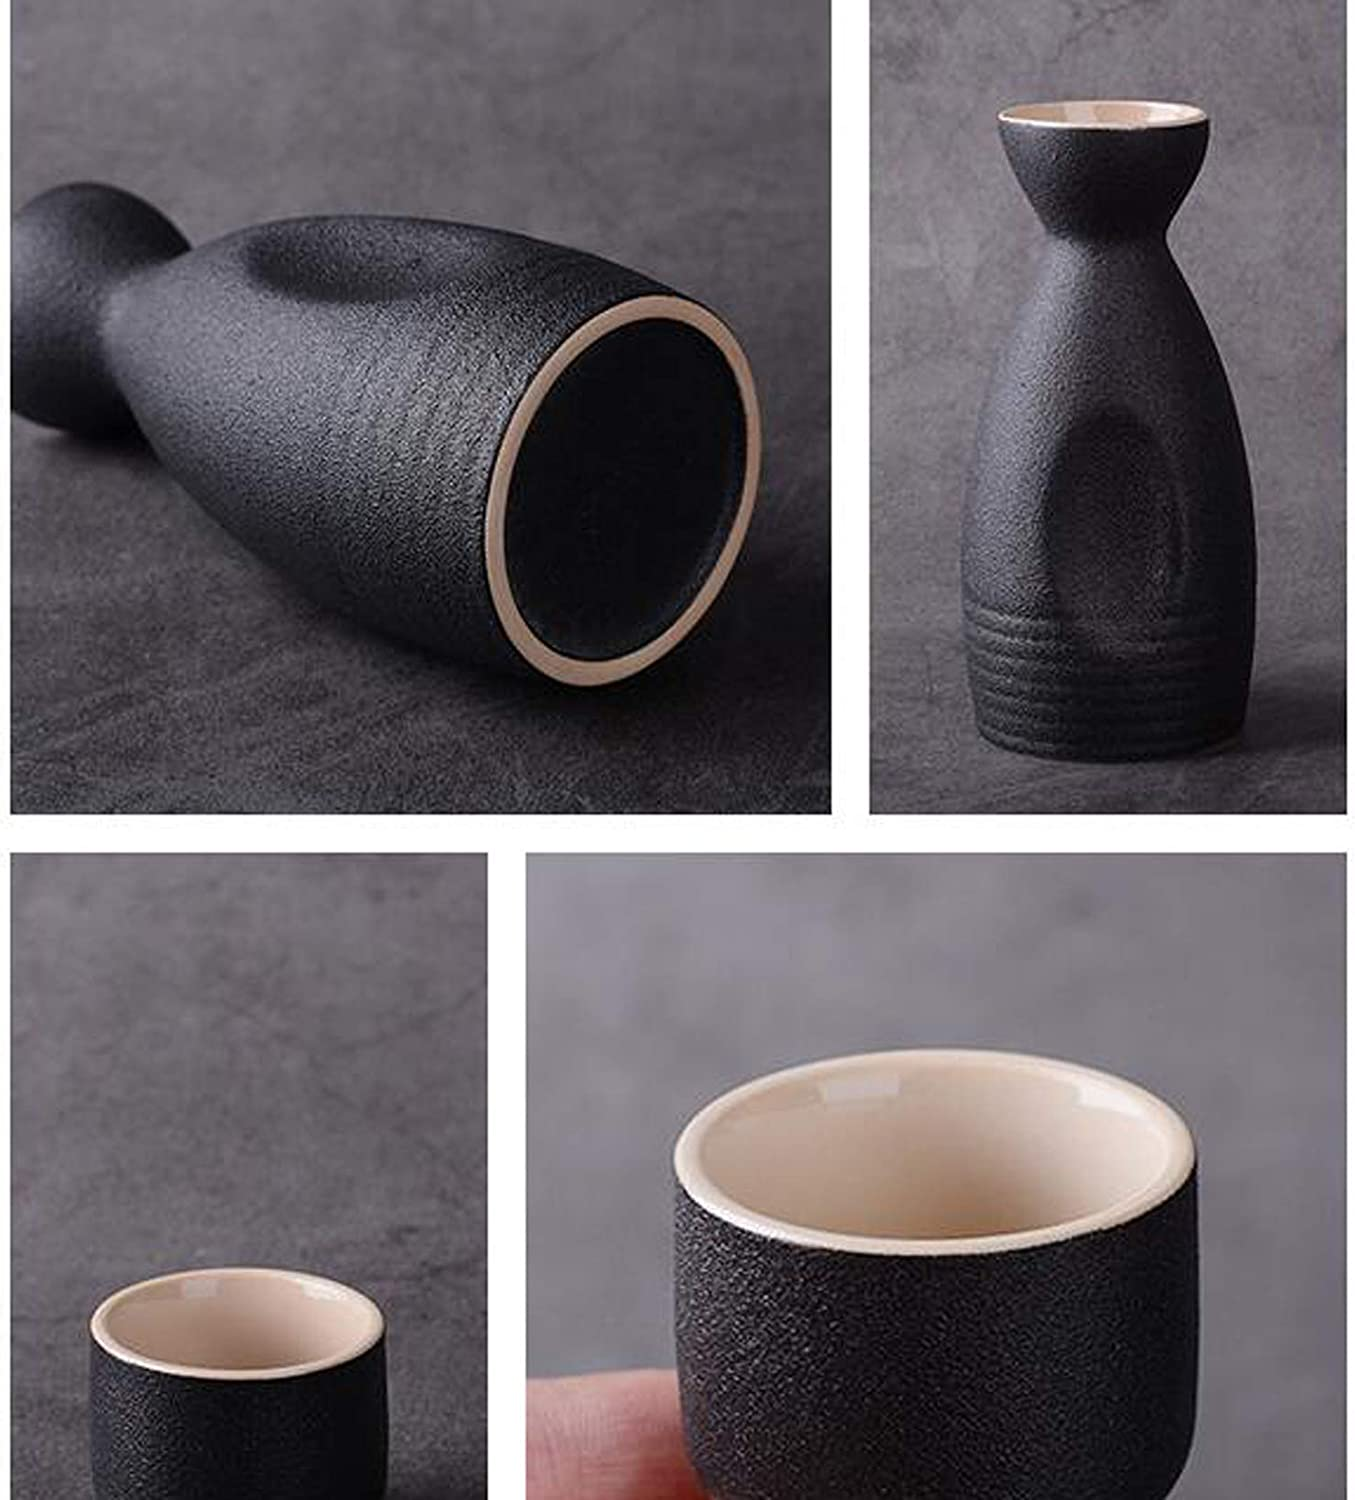 Uziqueif 9-piece Japanese sake set made of ceramic with 1 sake bottle and 4 cups,A